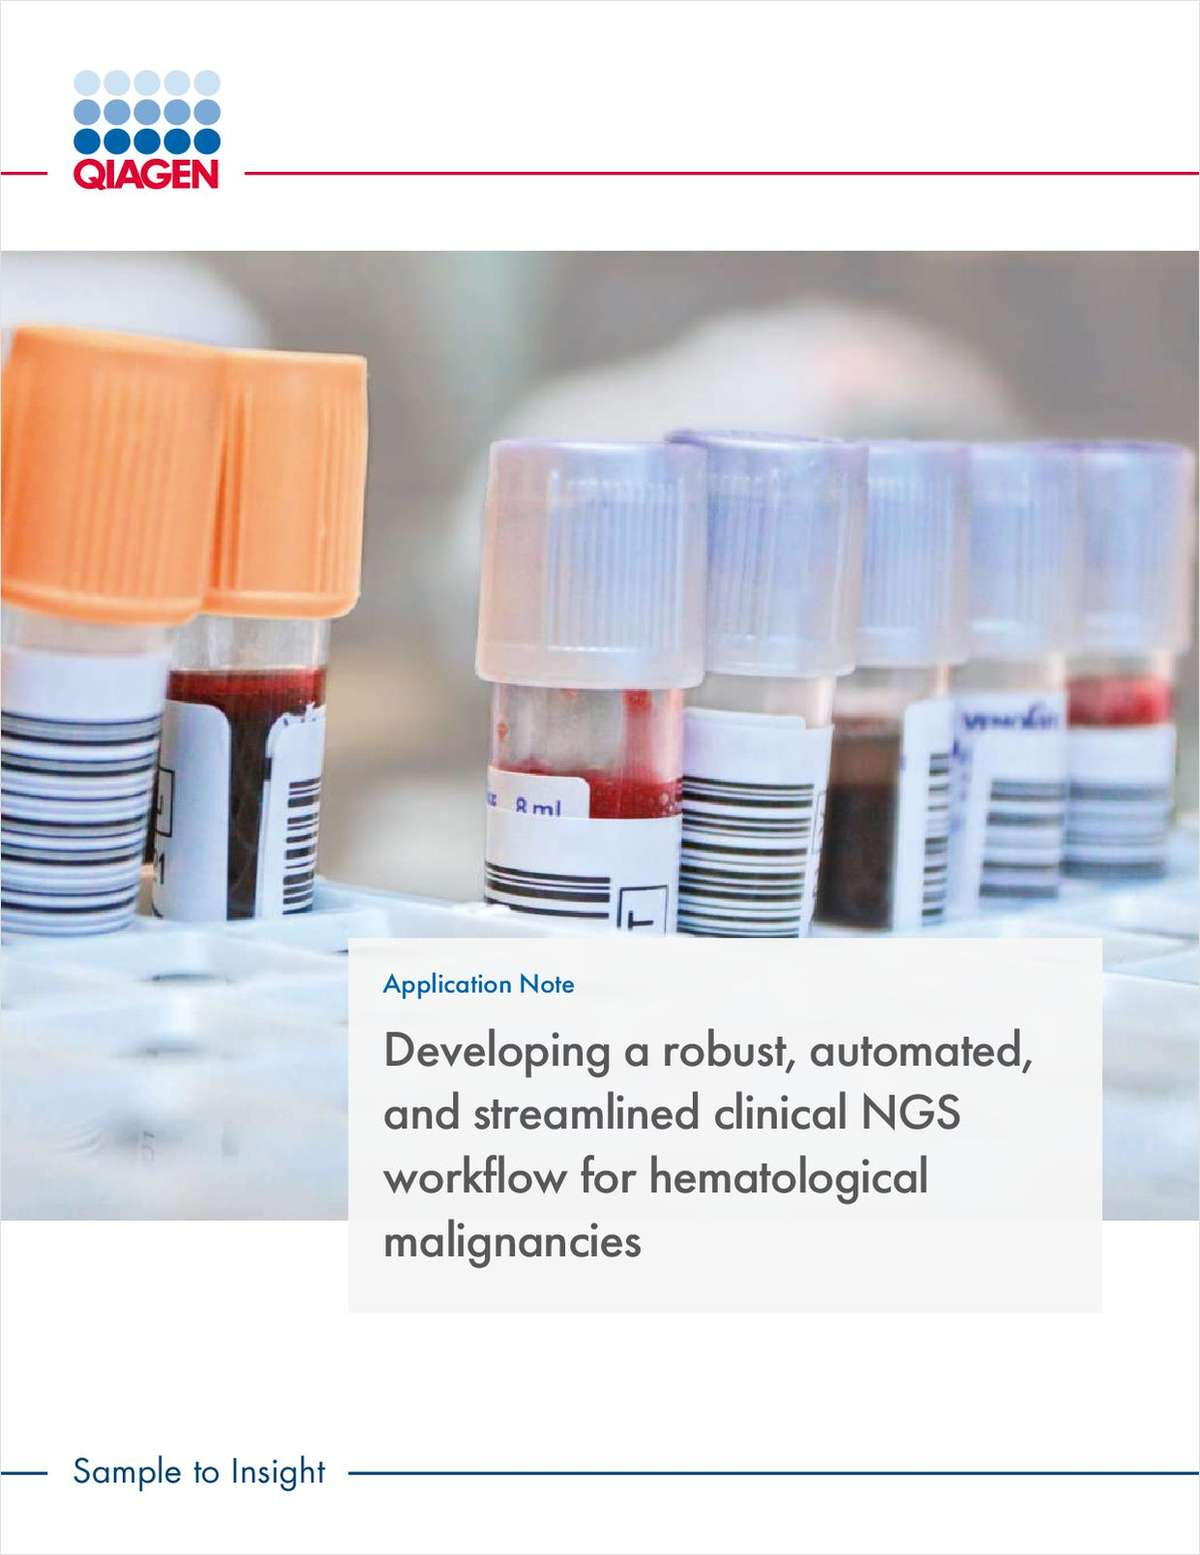 Developing a Robust, Automated, and Streamlined Clinical NGS Workflow for Hematological Malignancies